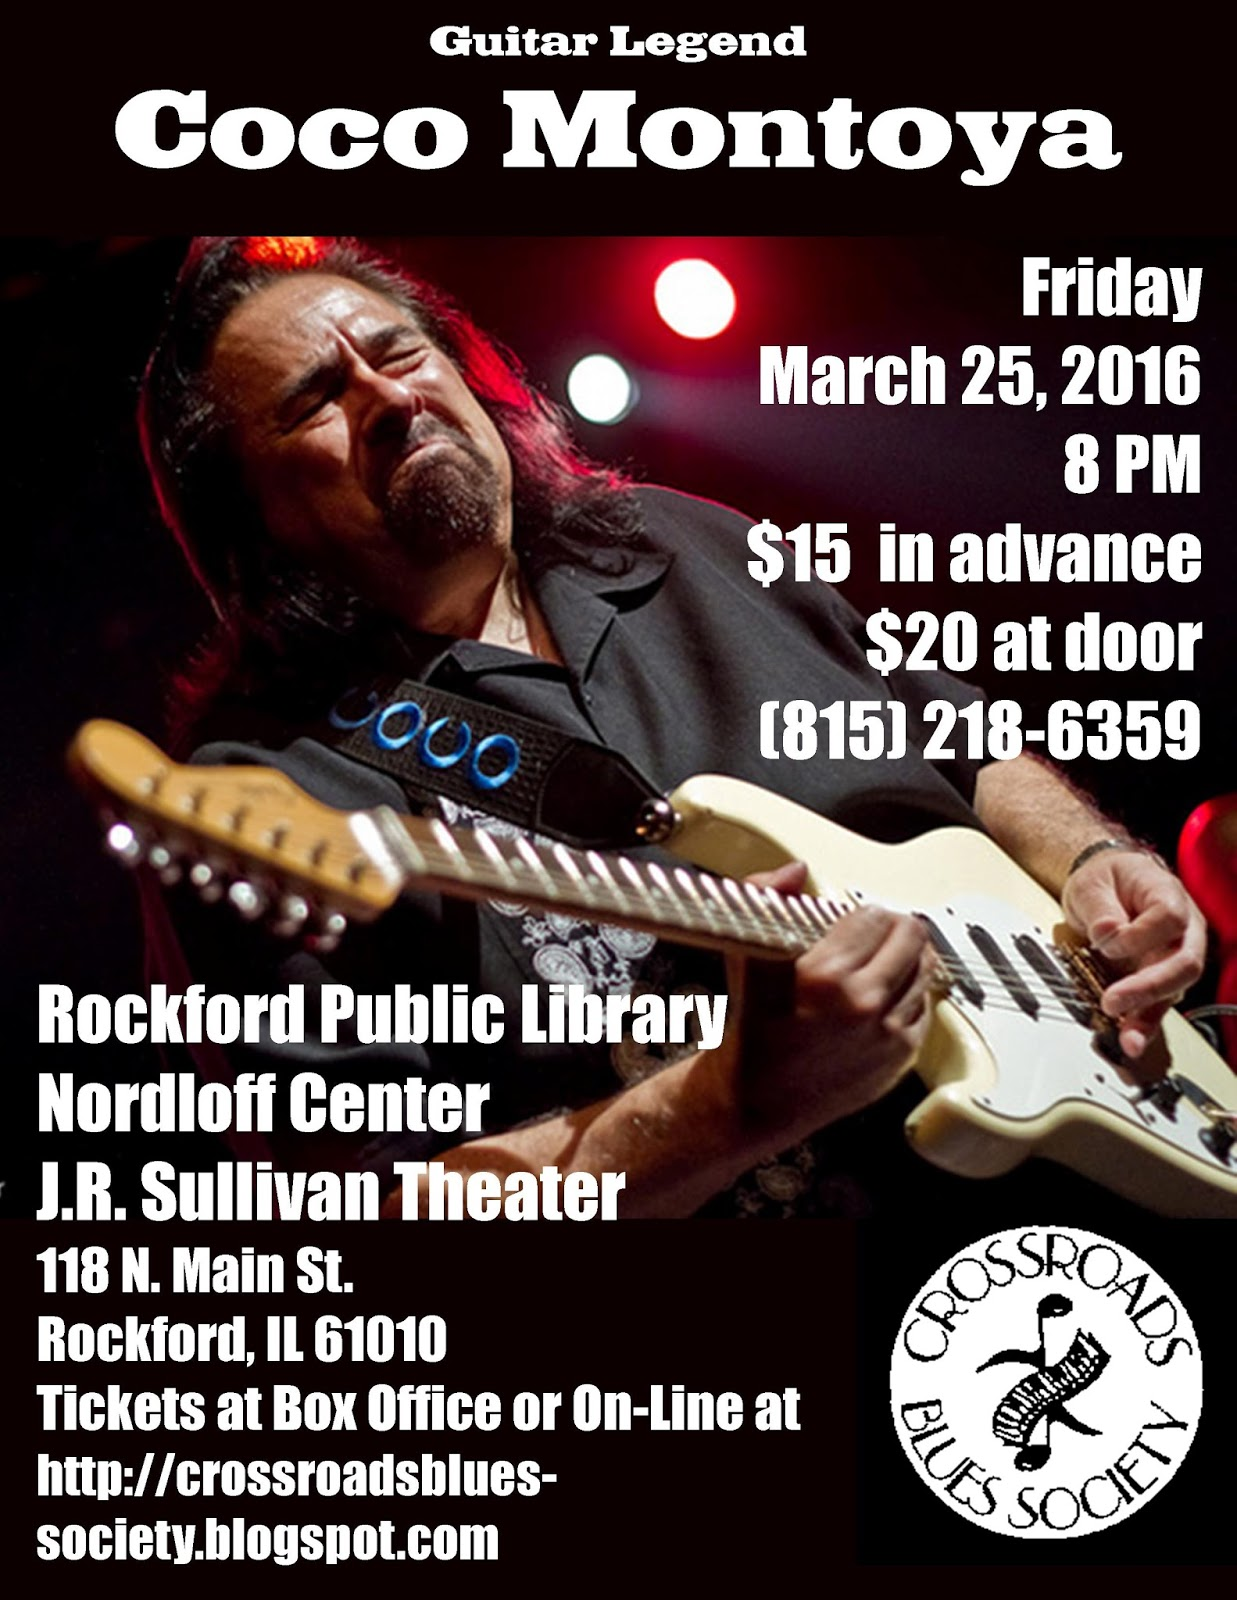 Buy Tickets to Coco Montoya Show